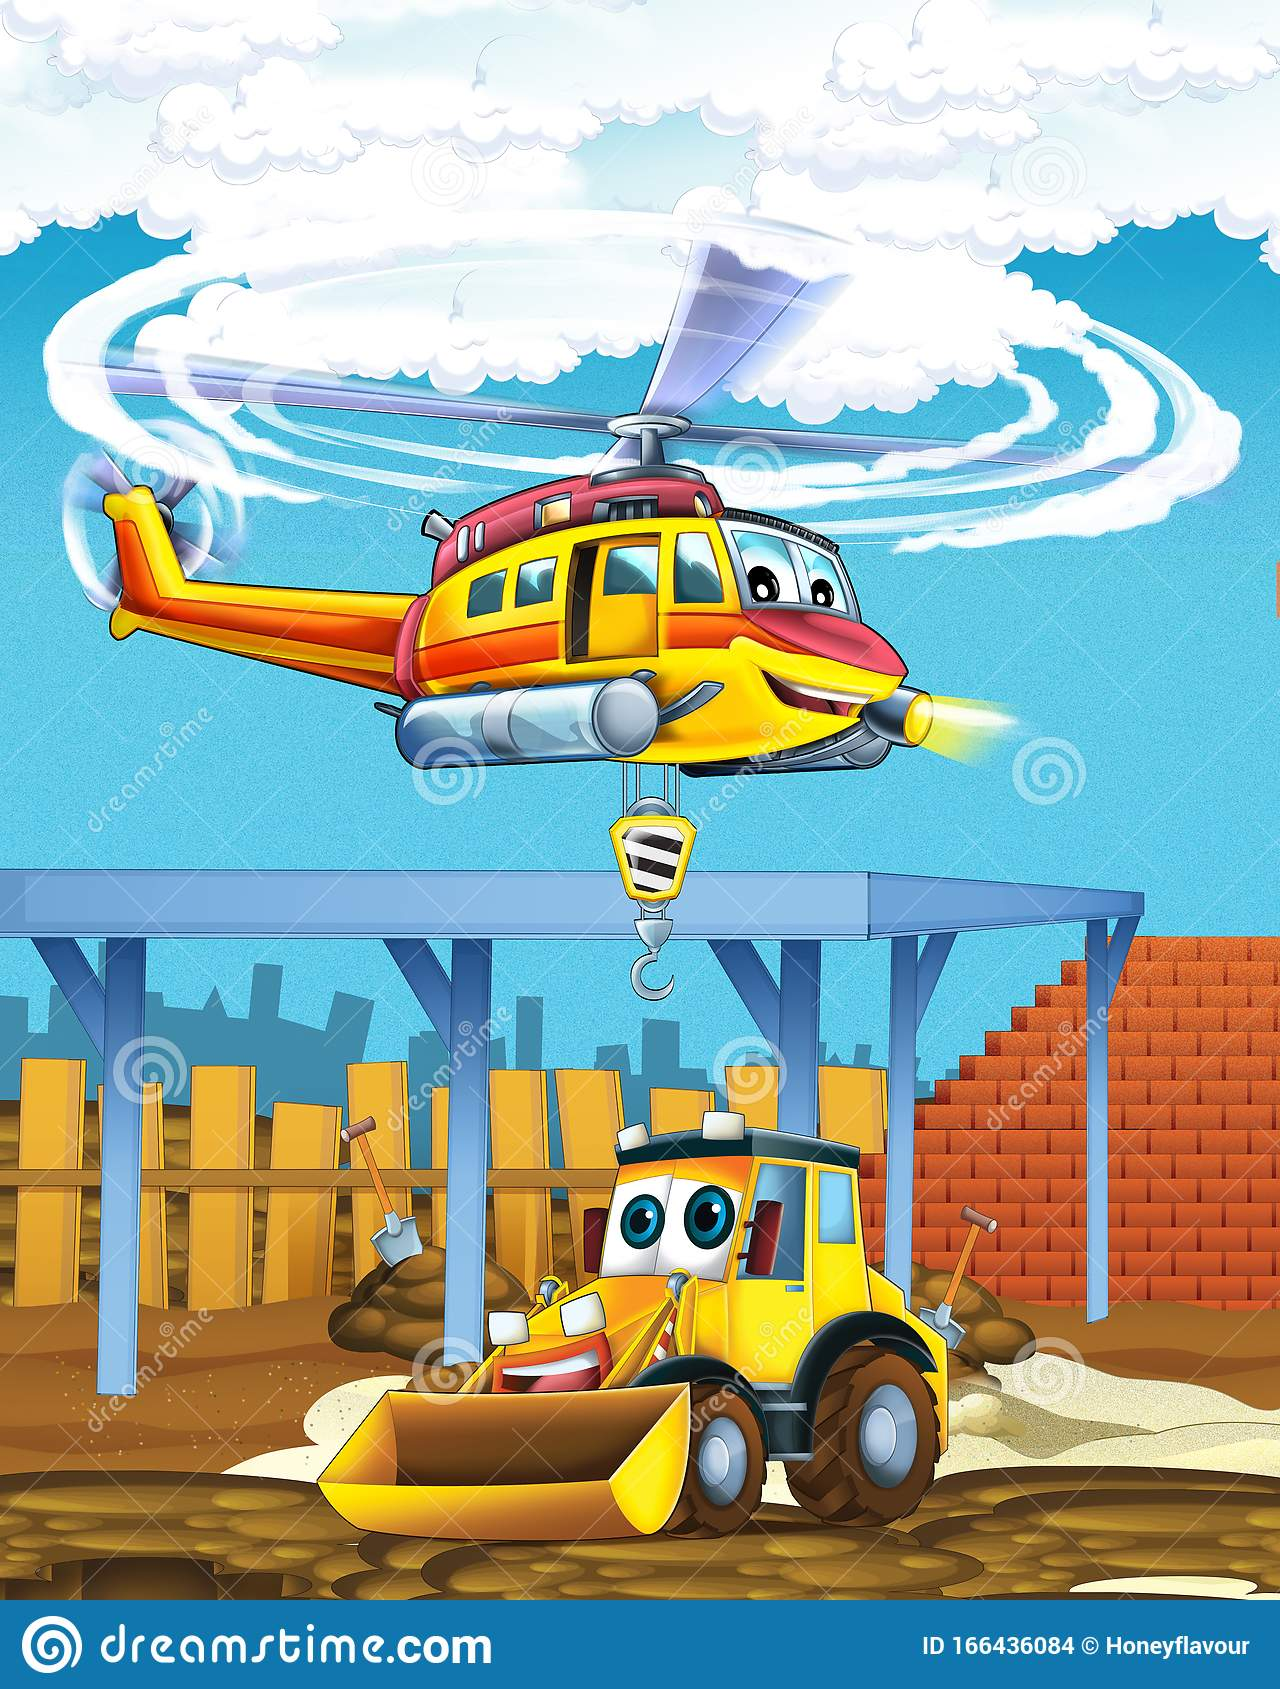 Cartoon Scene With Industry Cars On Construction Site And Flying Helicopter And Plane Illustration For Children Stock Illustration Illustration Of Driving Kids 166436084